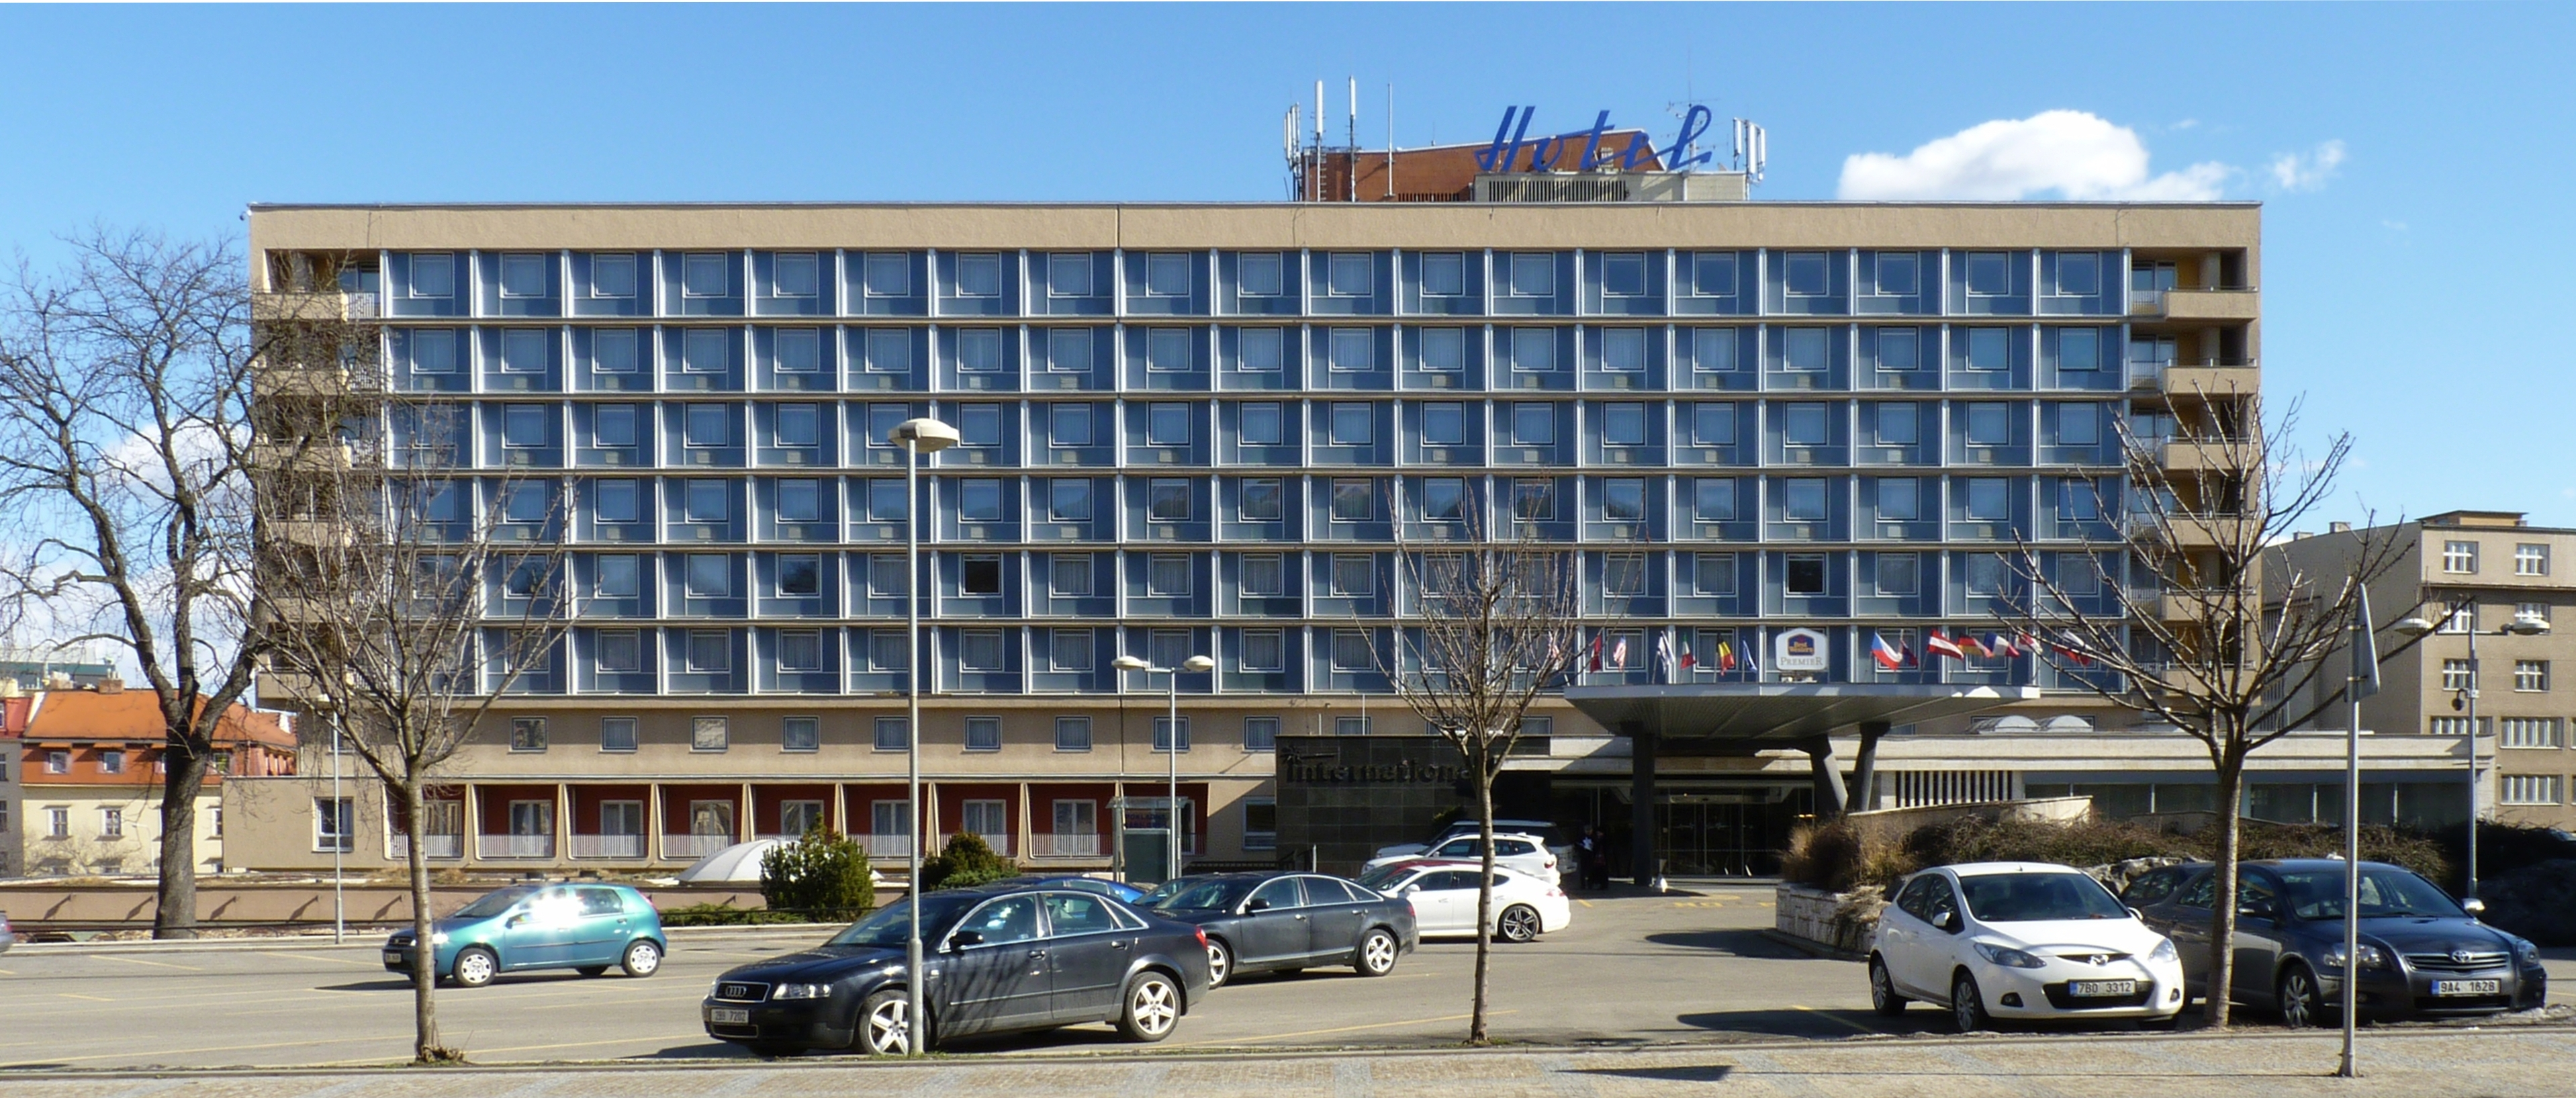 file hotel international in brno jpg wikimedia commons